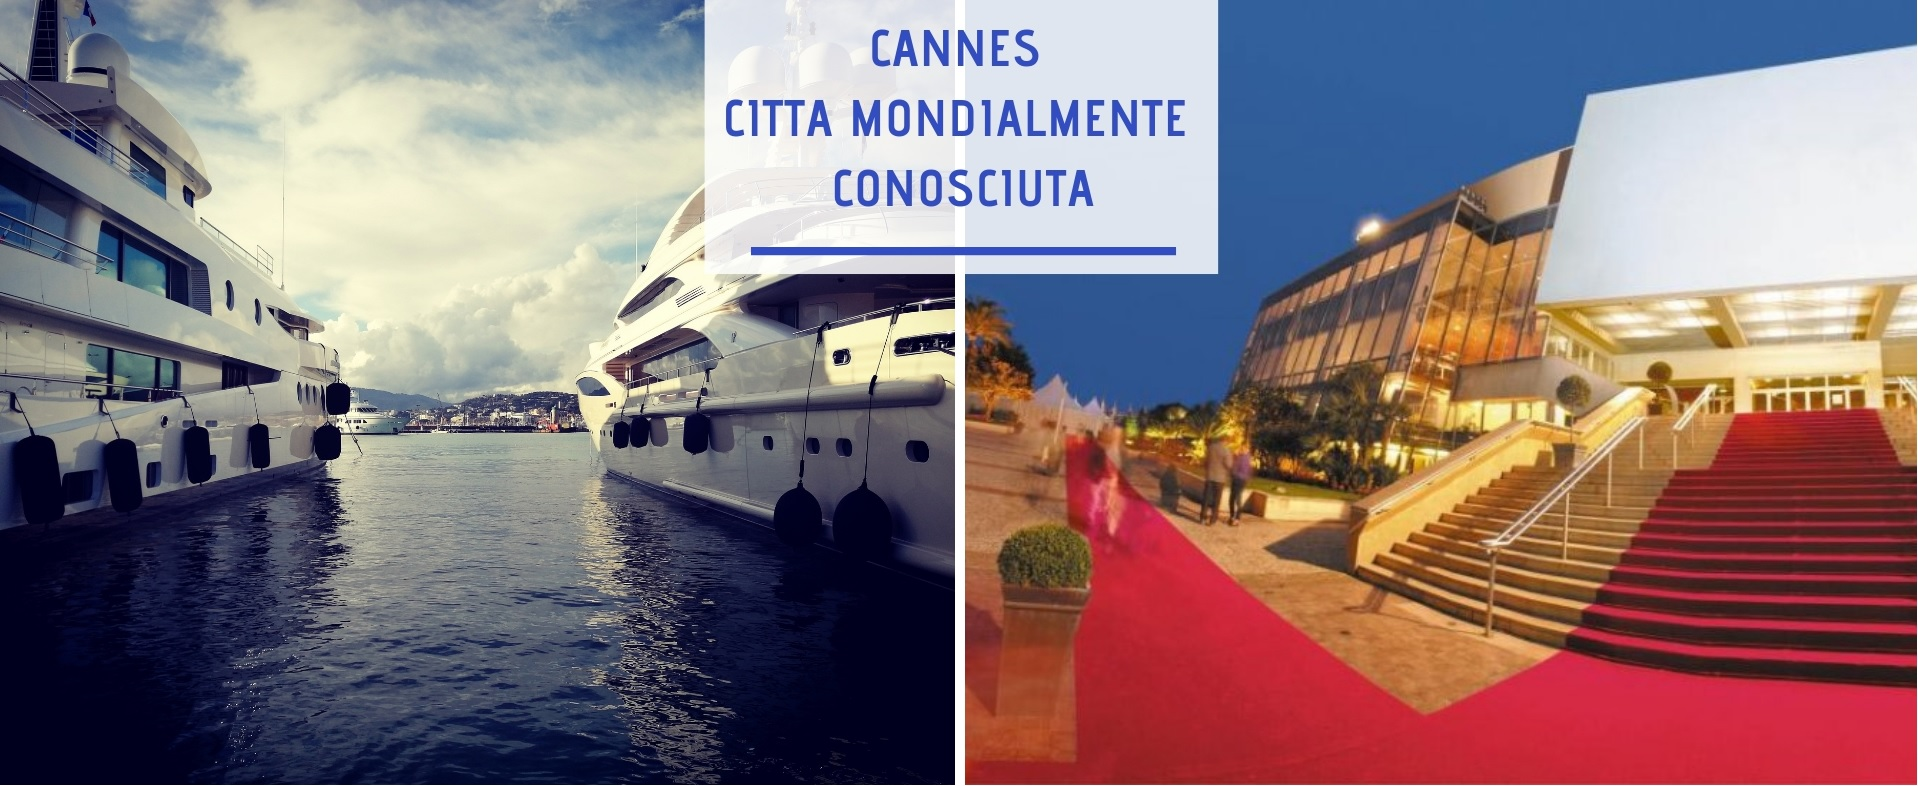 Cannes italien